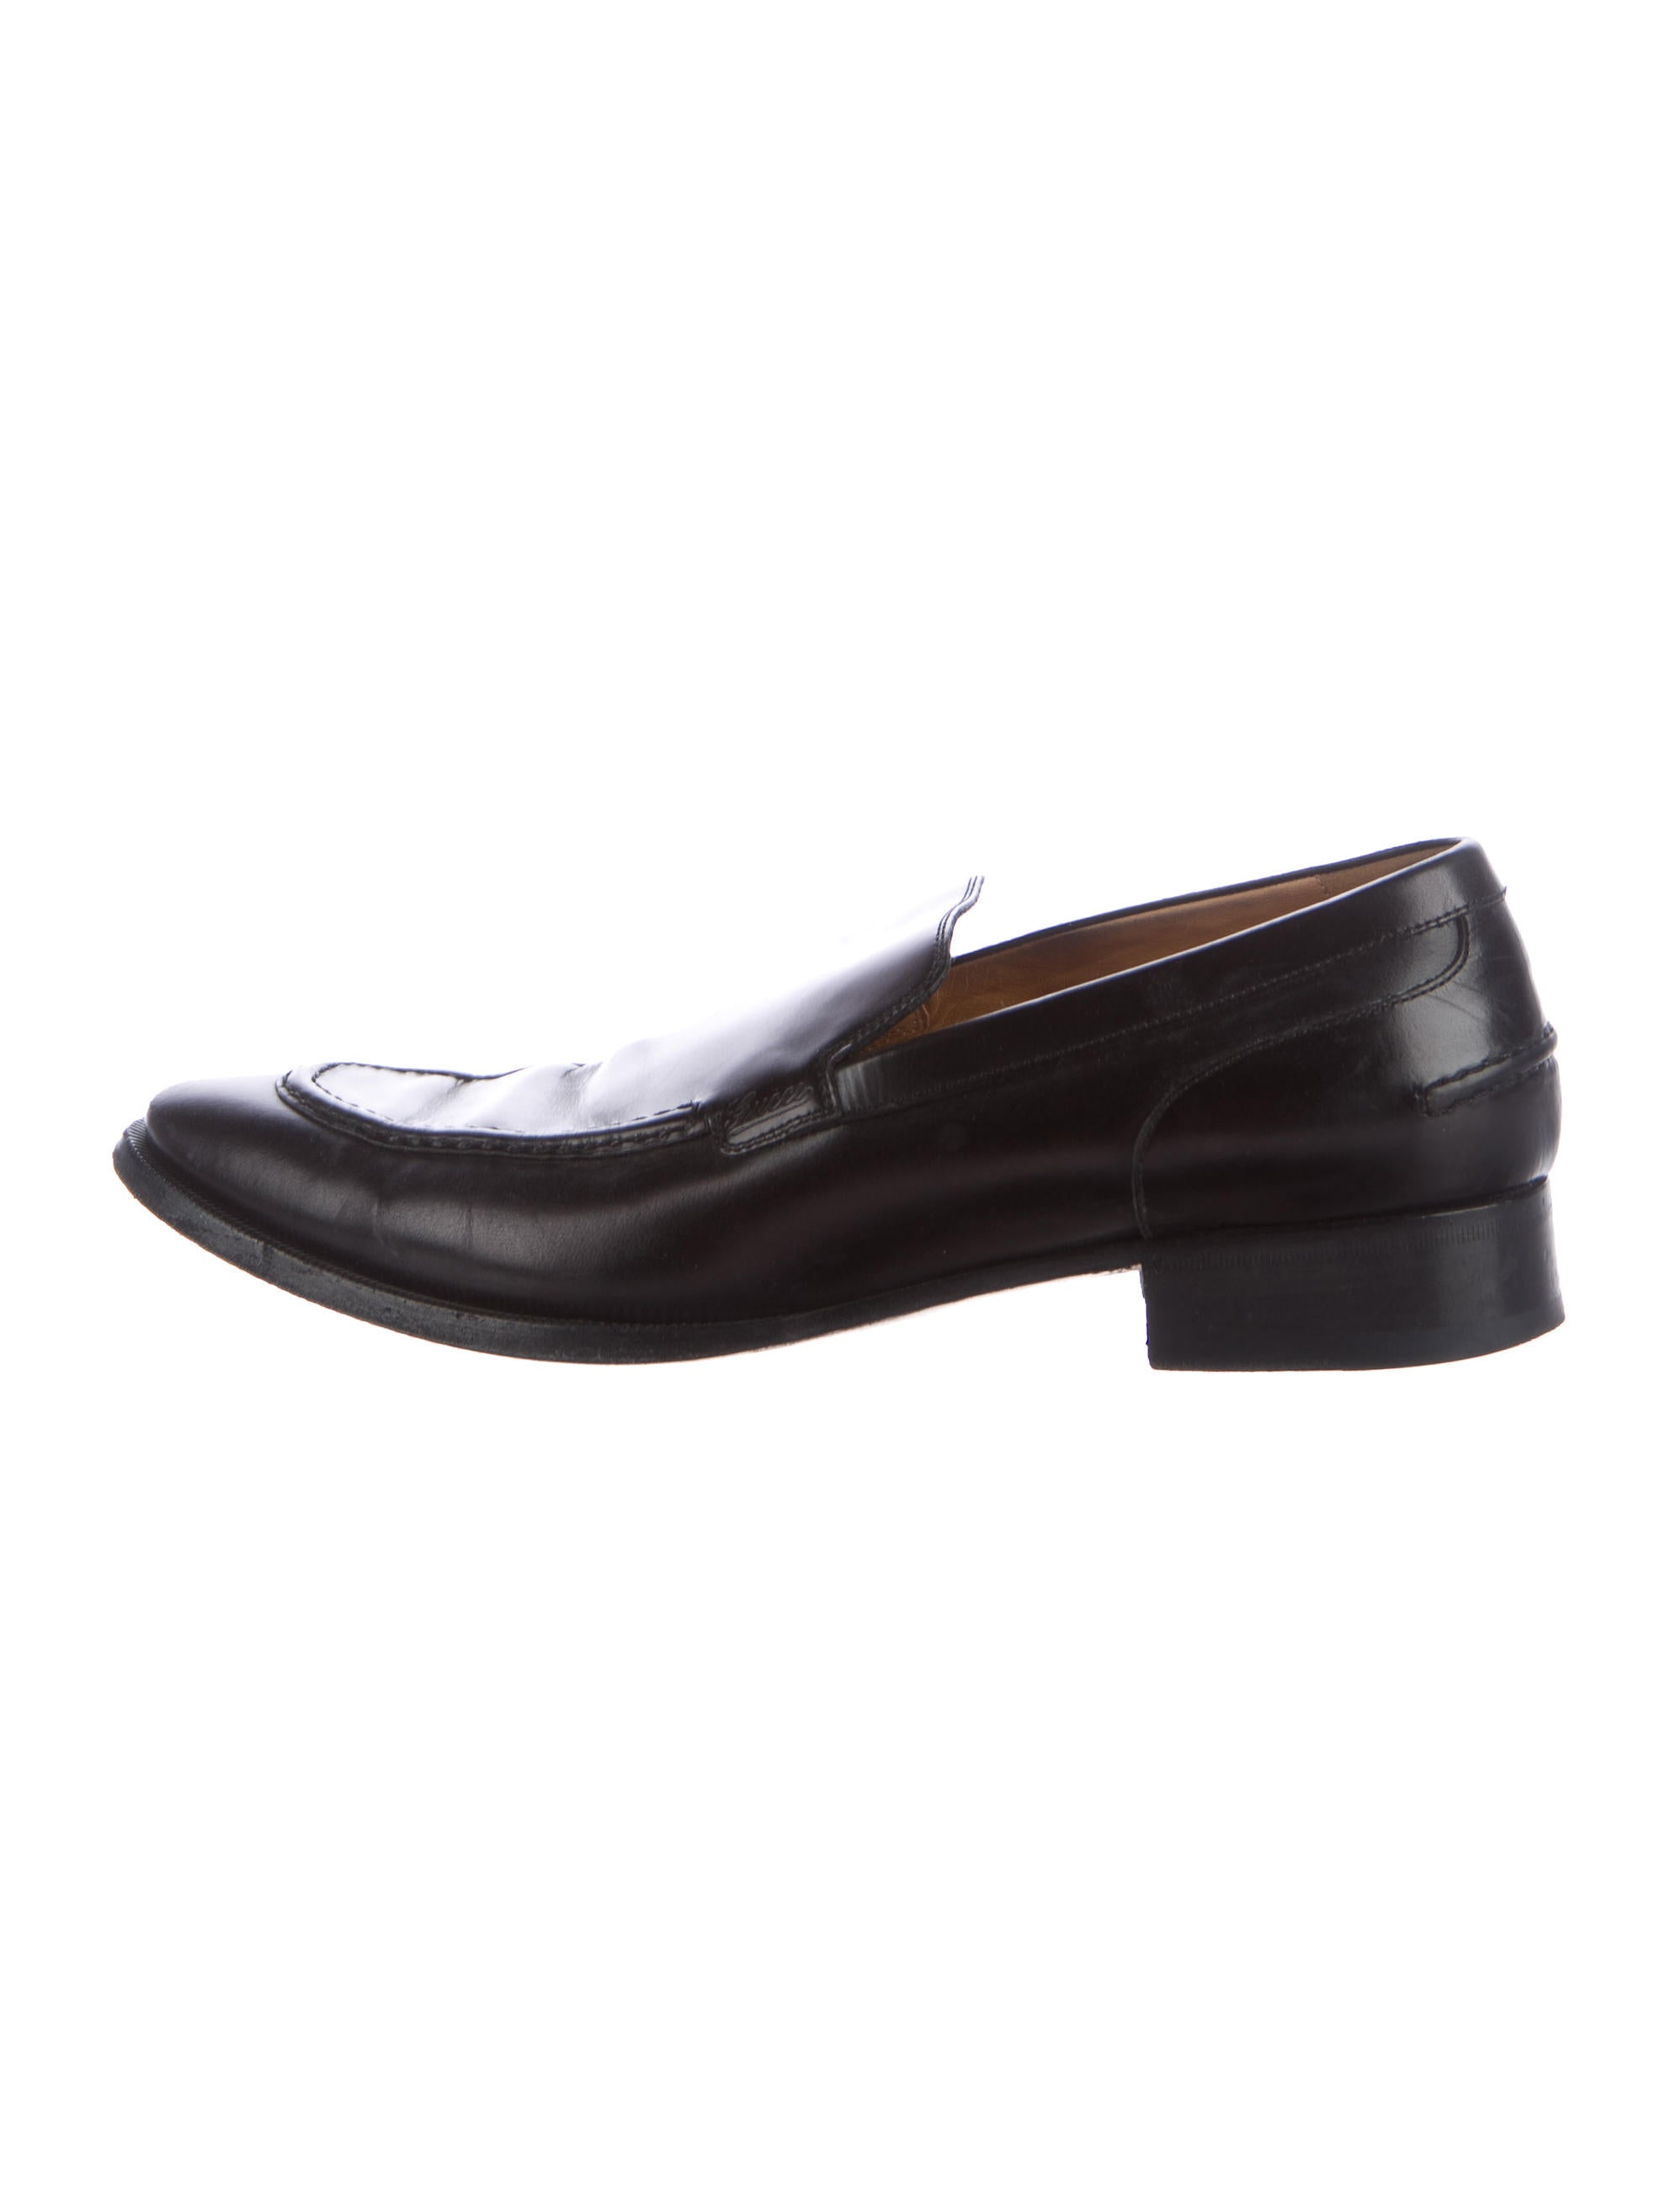 gucci leather dress loafers shoes guc156469 the realreal